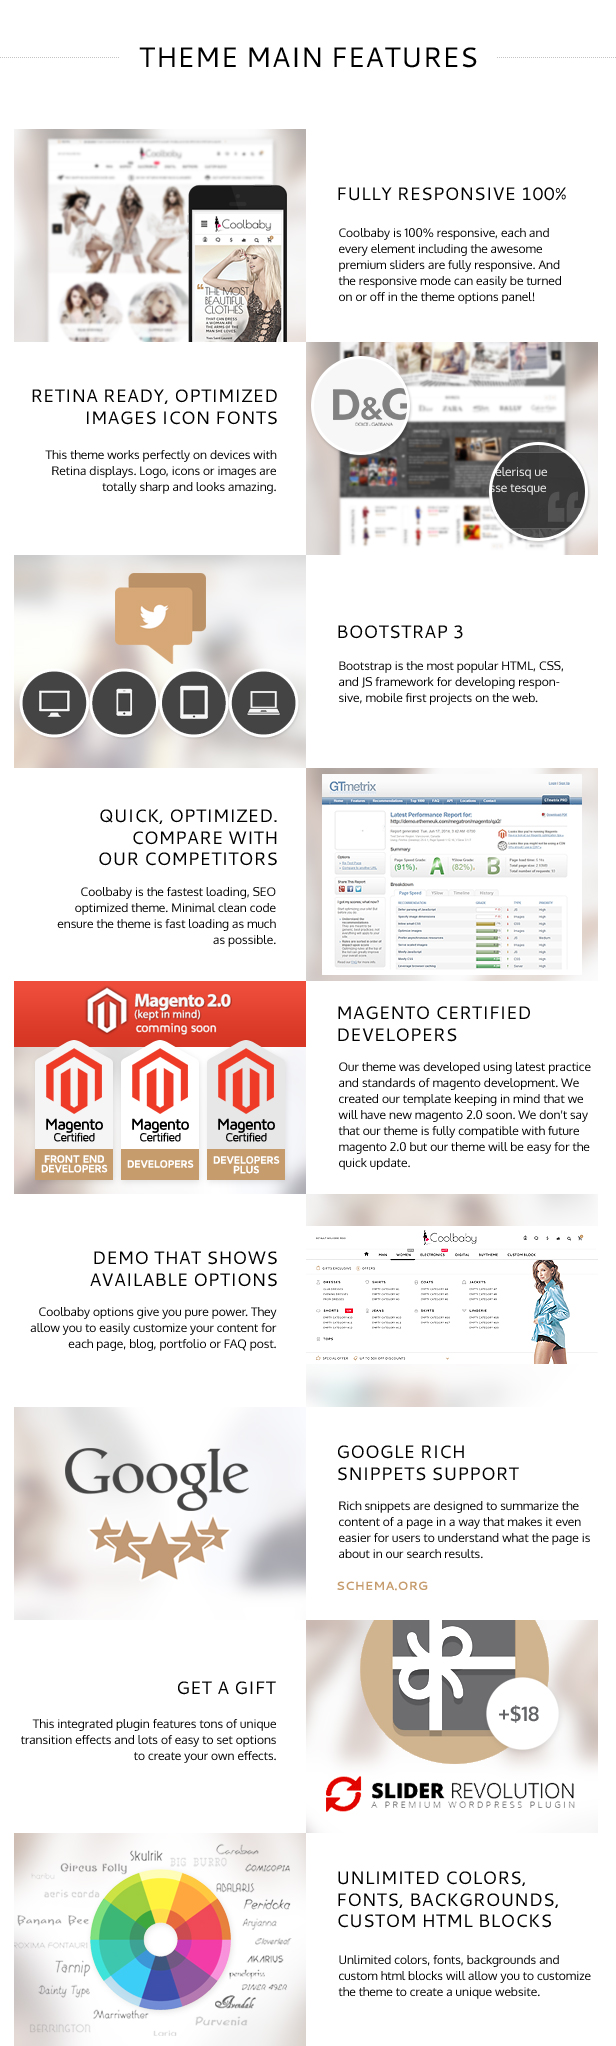 Coolbaby - original Magento theme